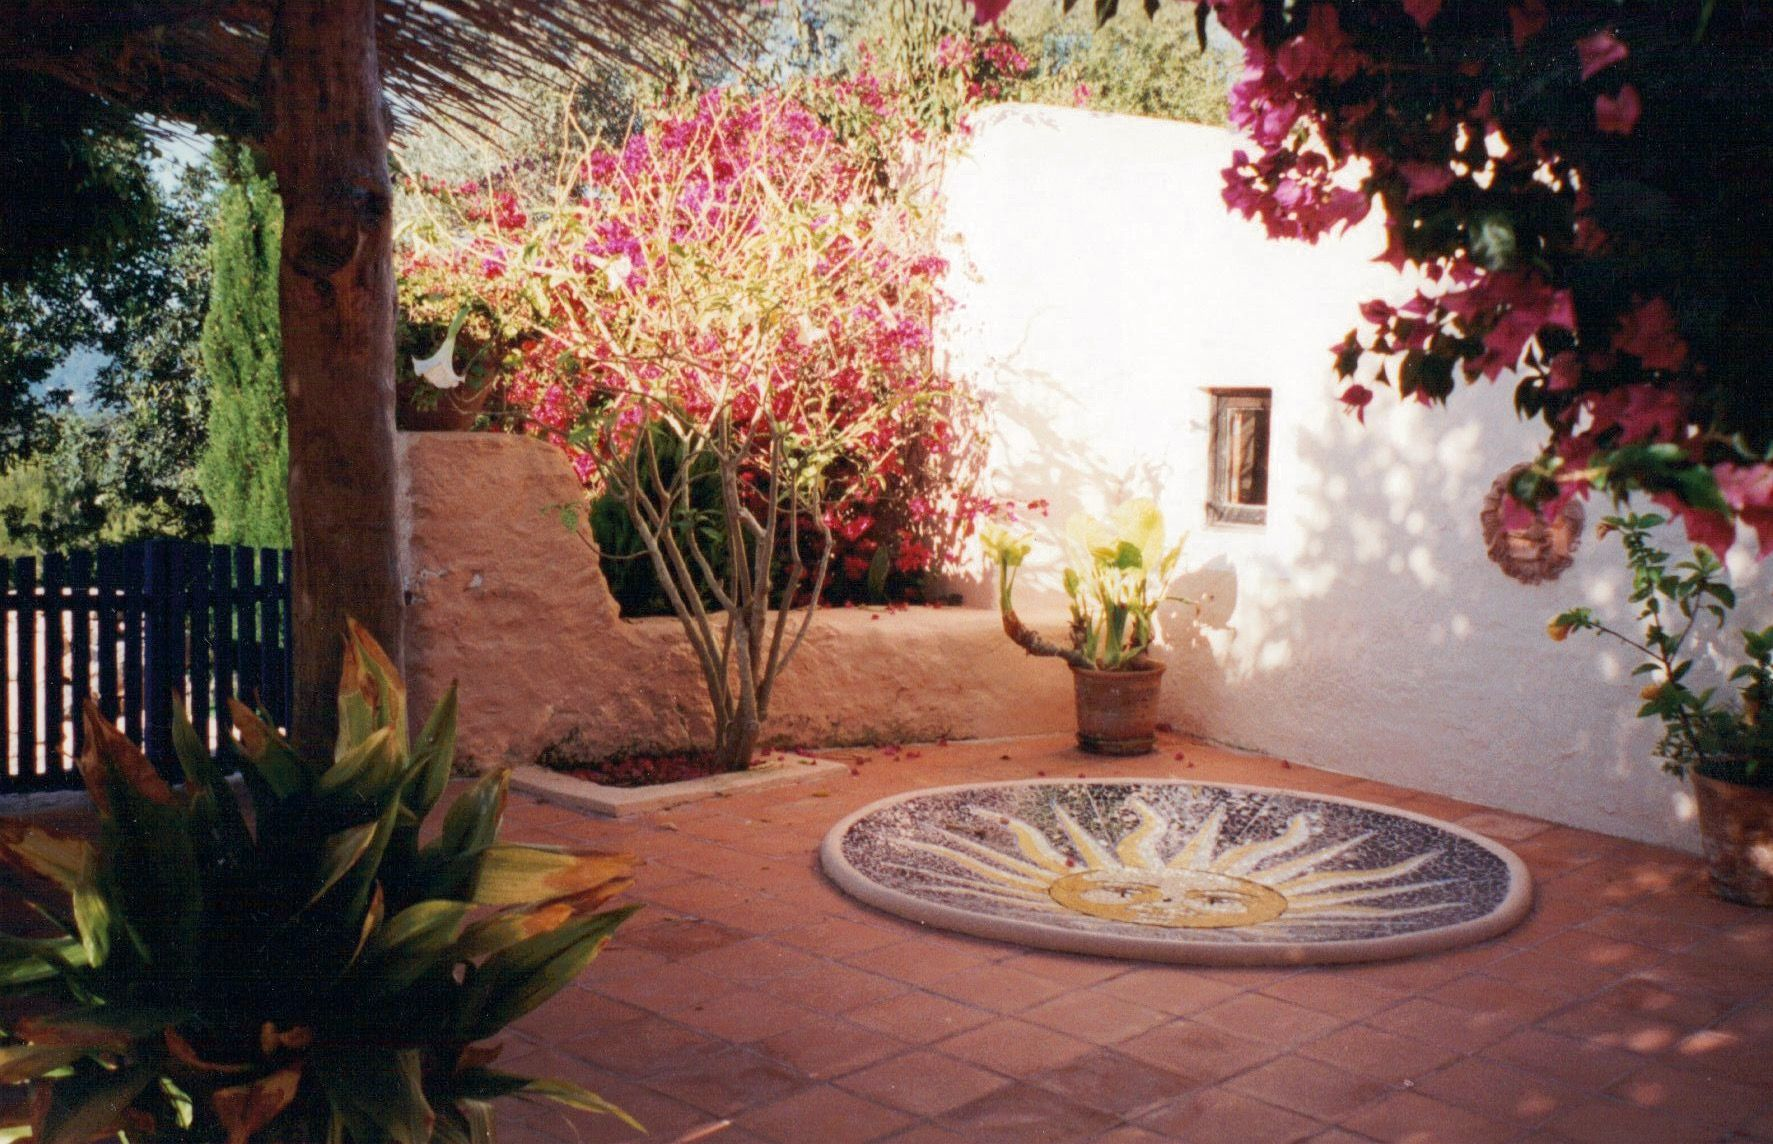 Pin by laramie driscoll on spain spain